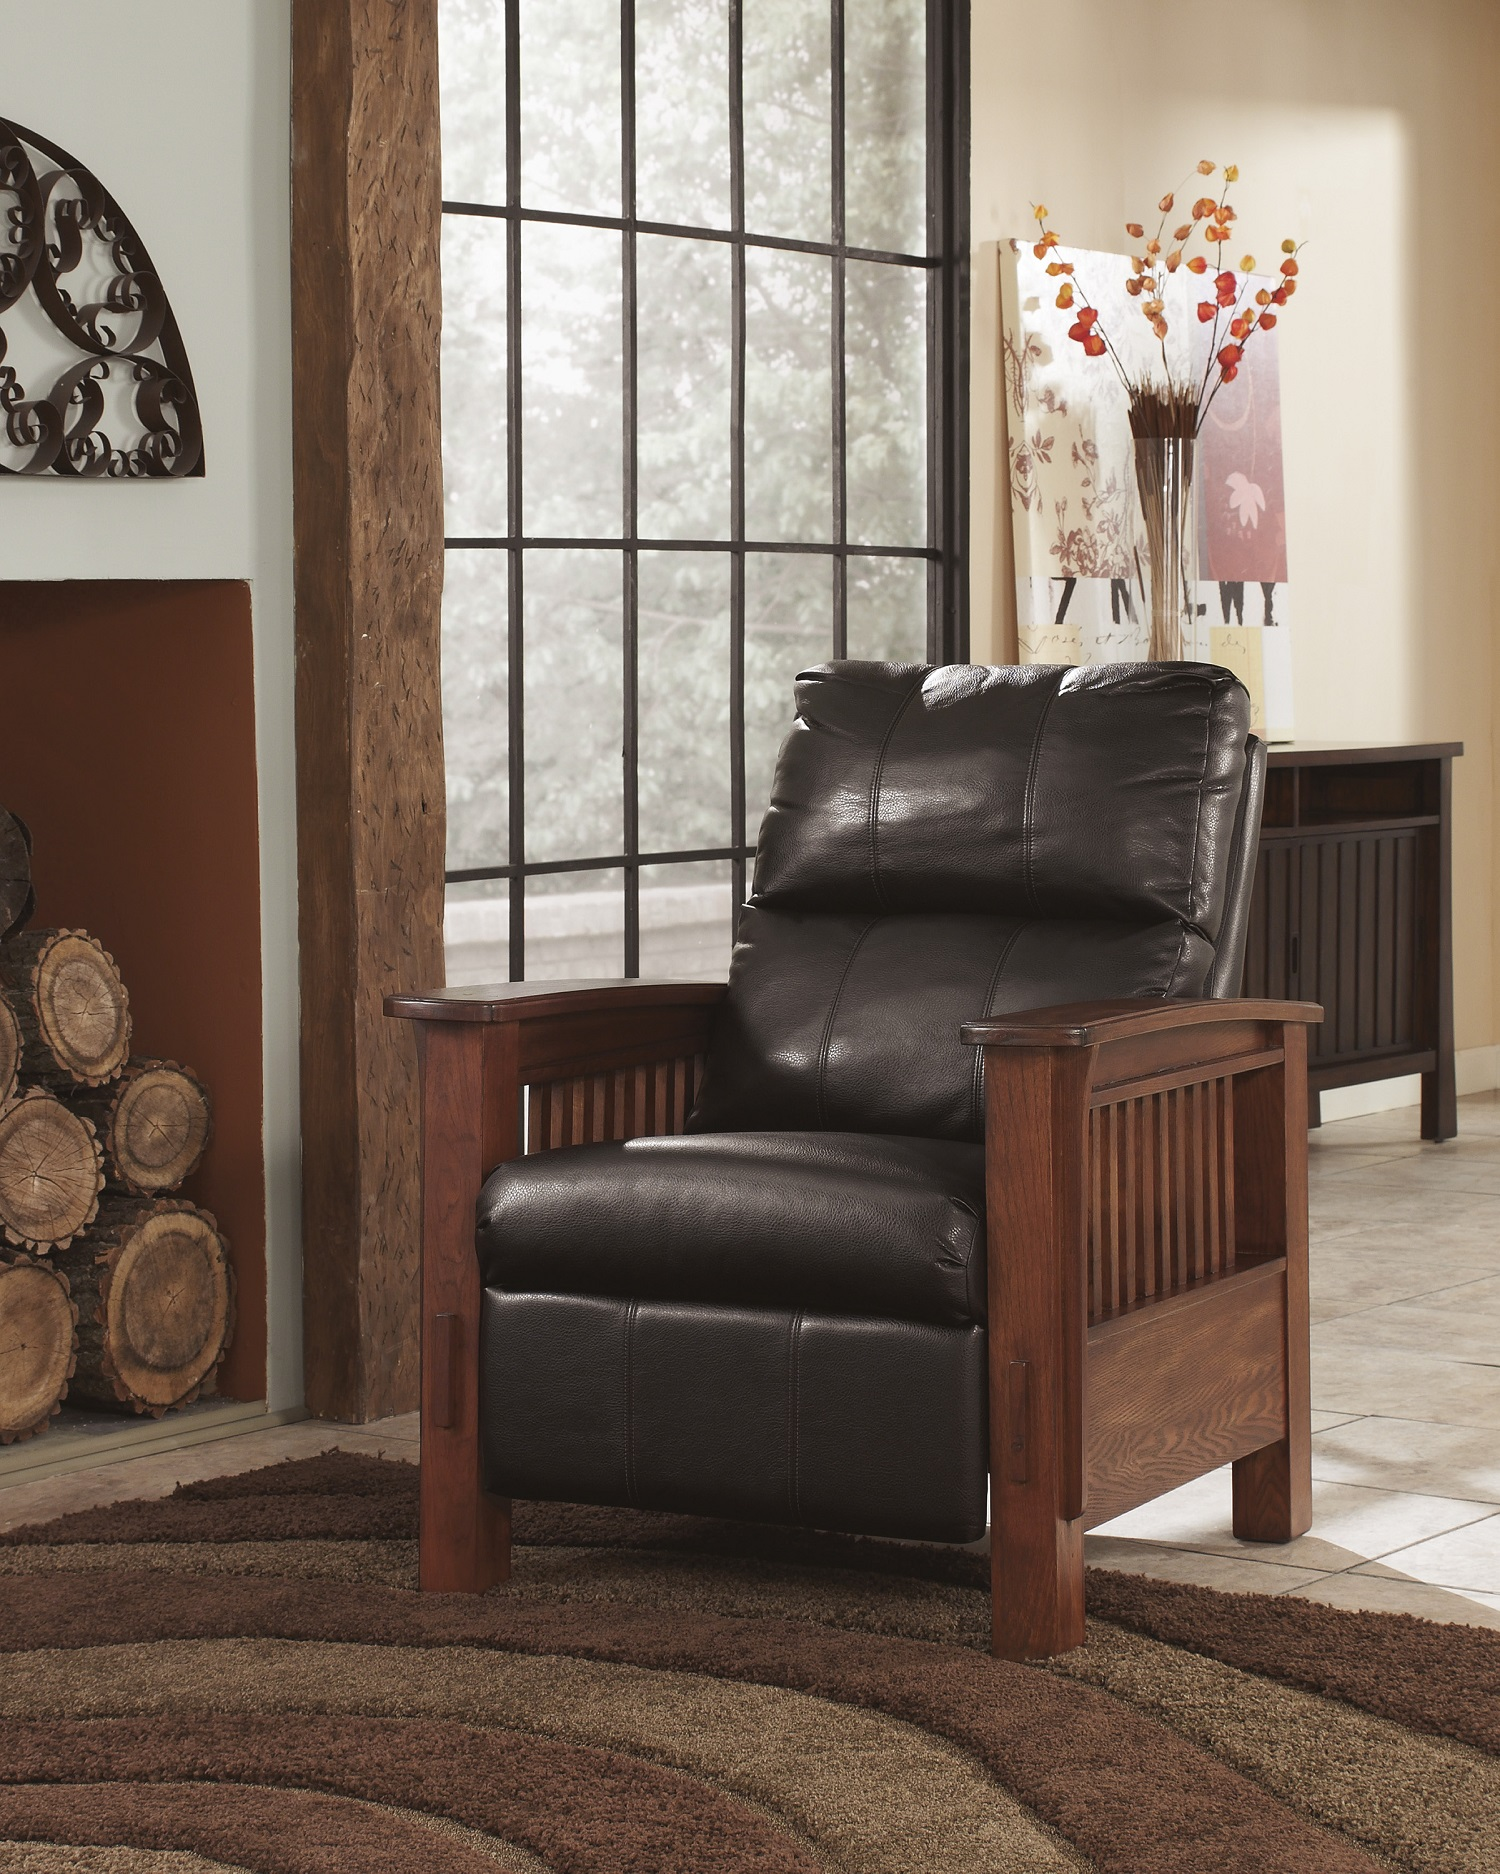 Santa Fe Chocolate High Leg Recliner Image